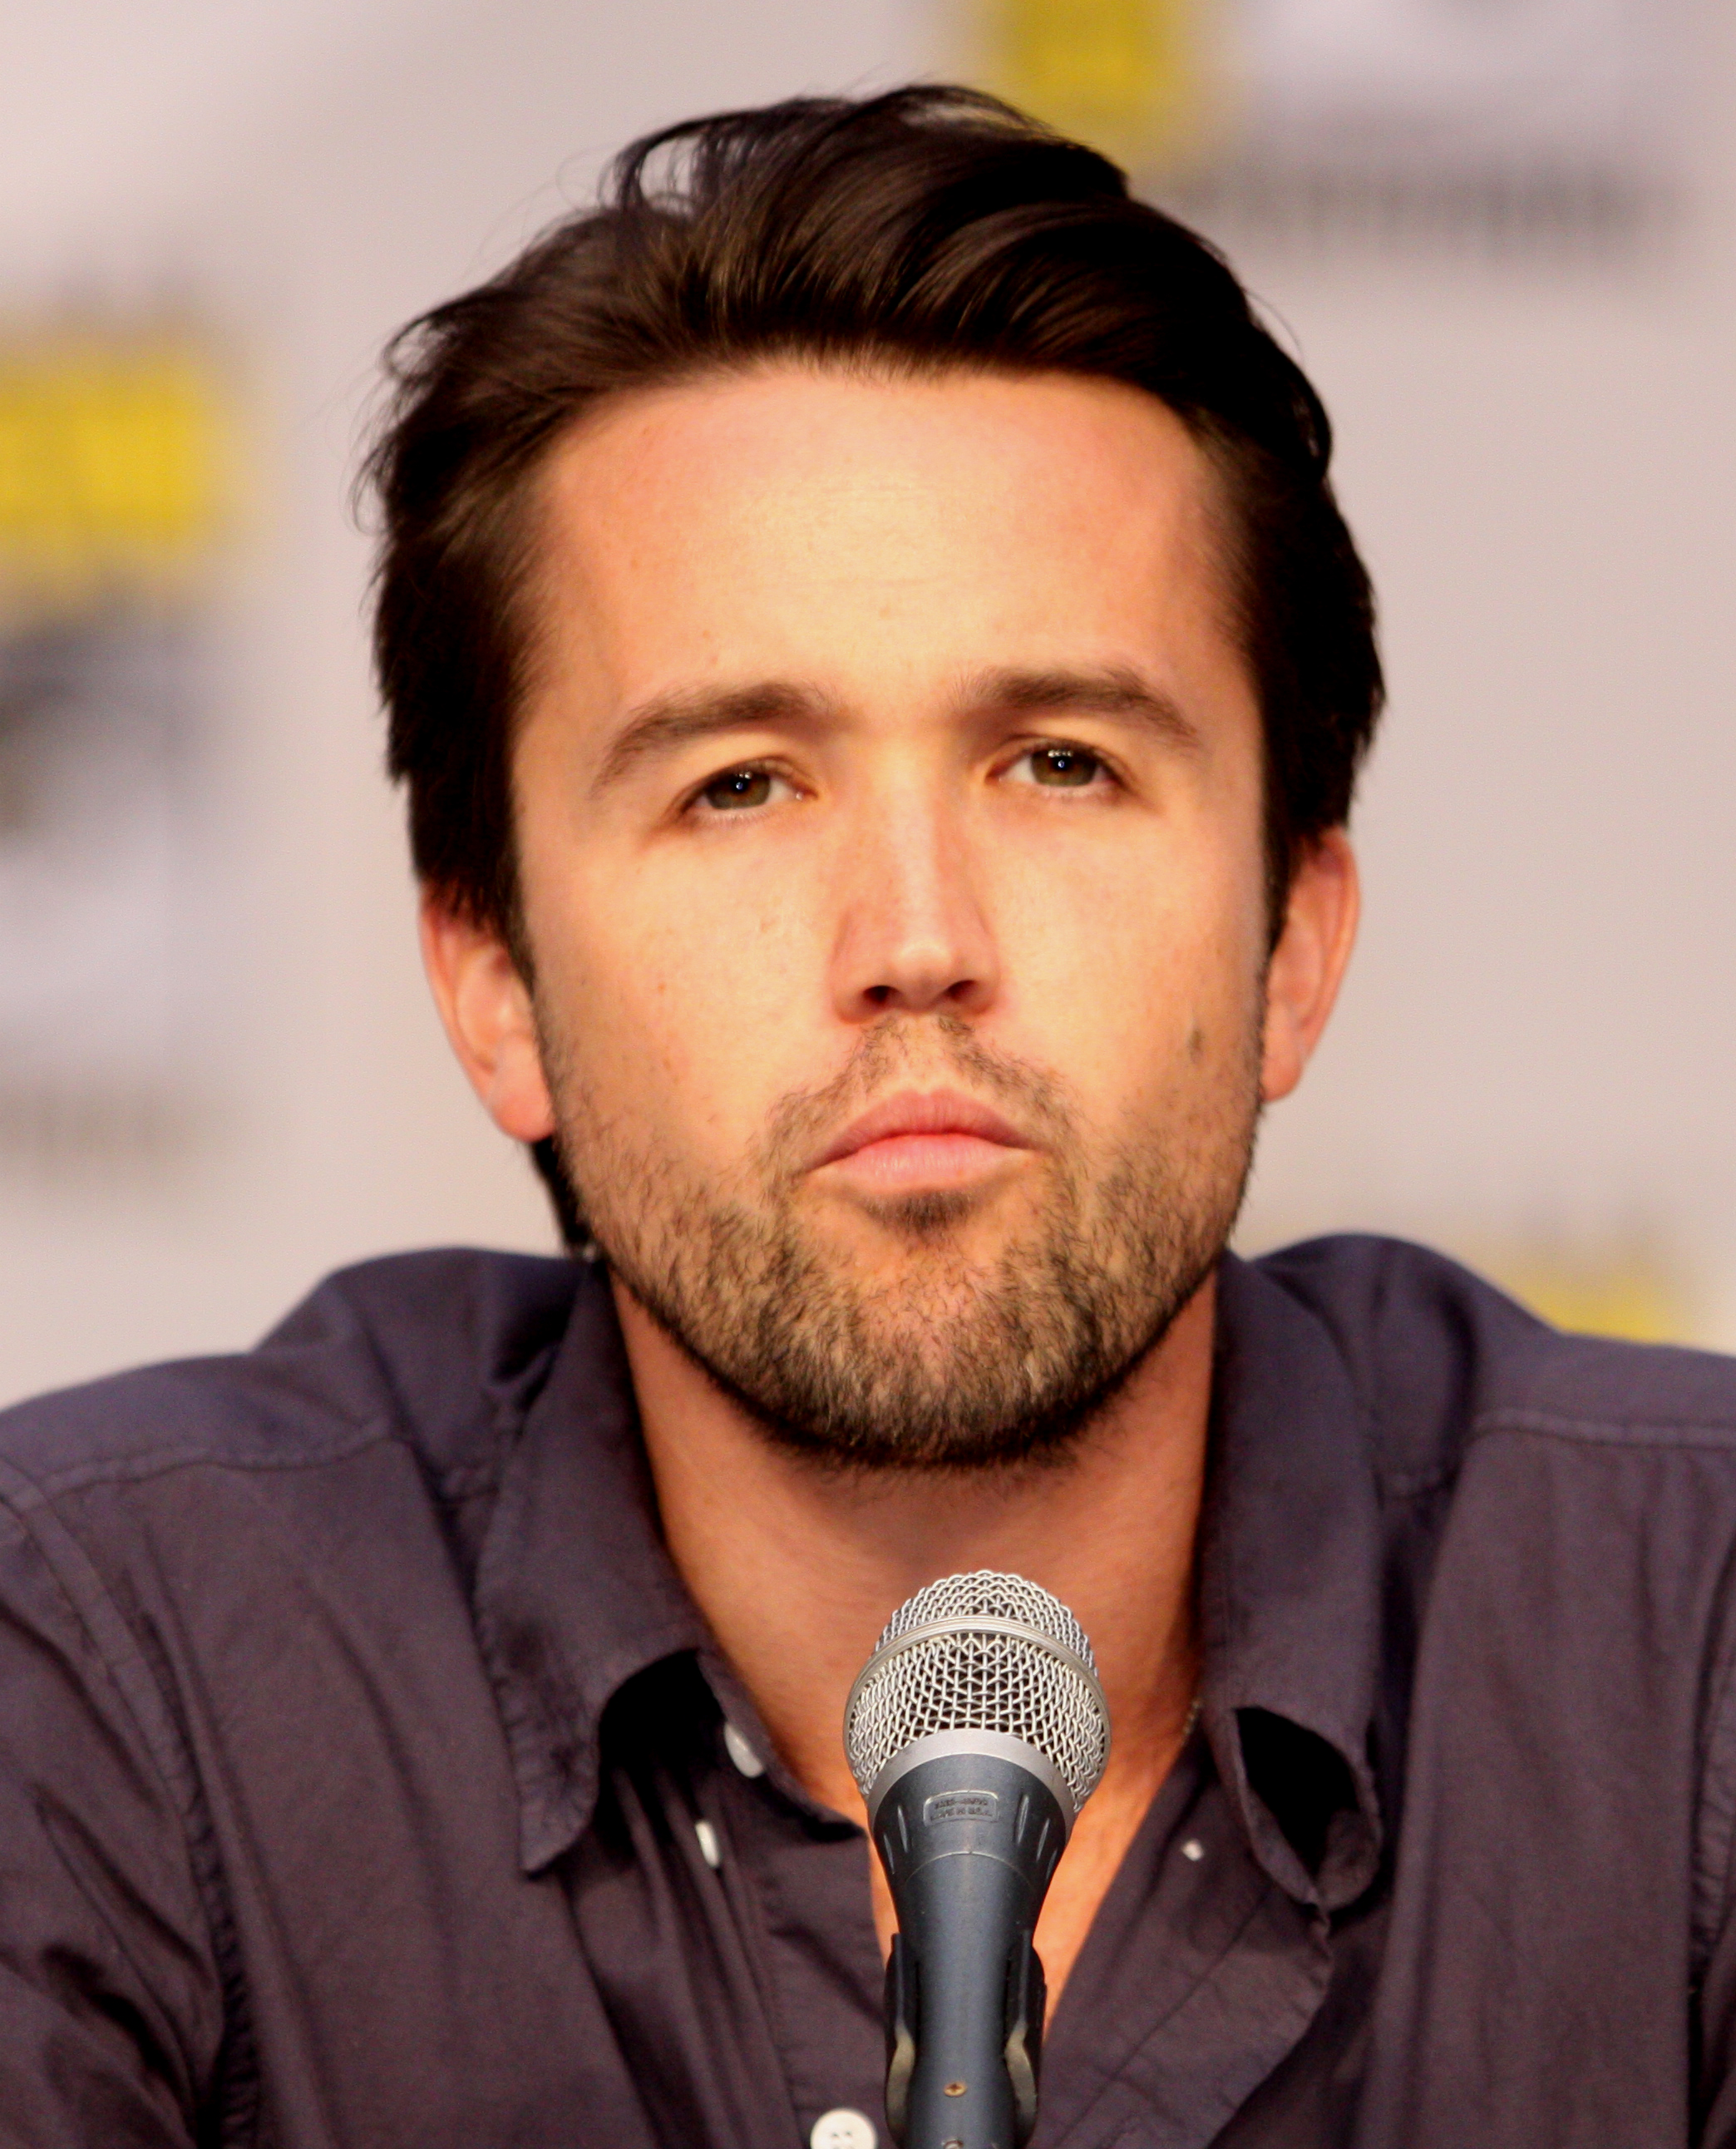 The 41-year old son of father Robert McElhenney and mother Helena McElhenney Rob McElhenney in 2018 photo. Rob McElhenney earned a 4 million dollar salary - leaving the net worth at 40 million in 2018